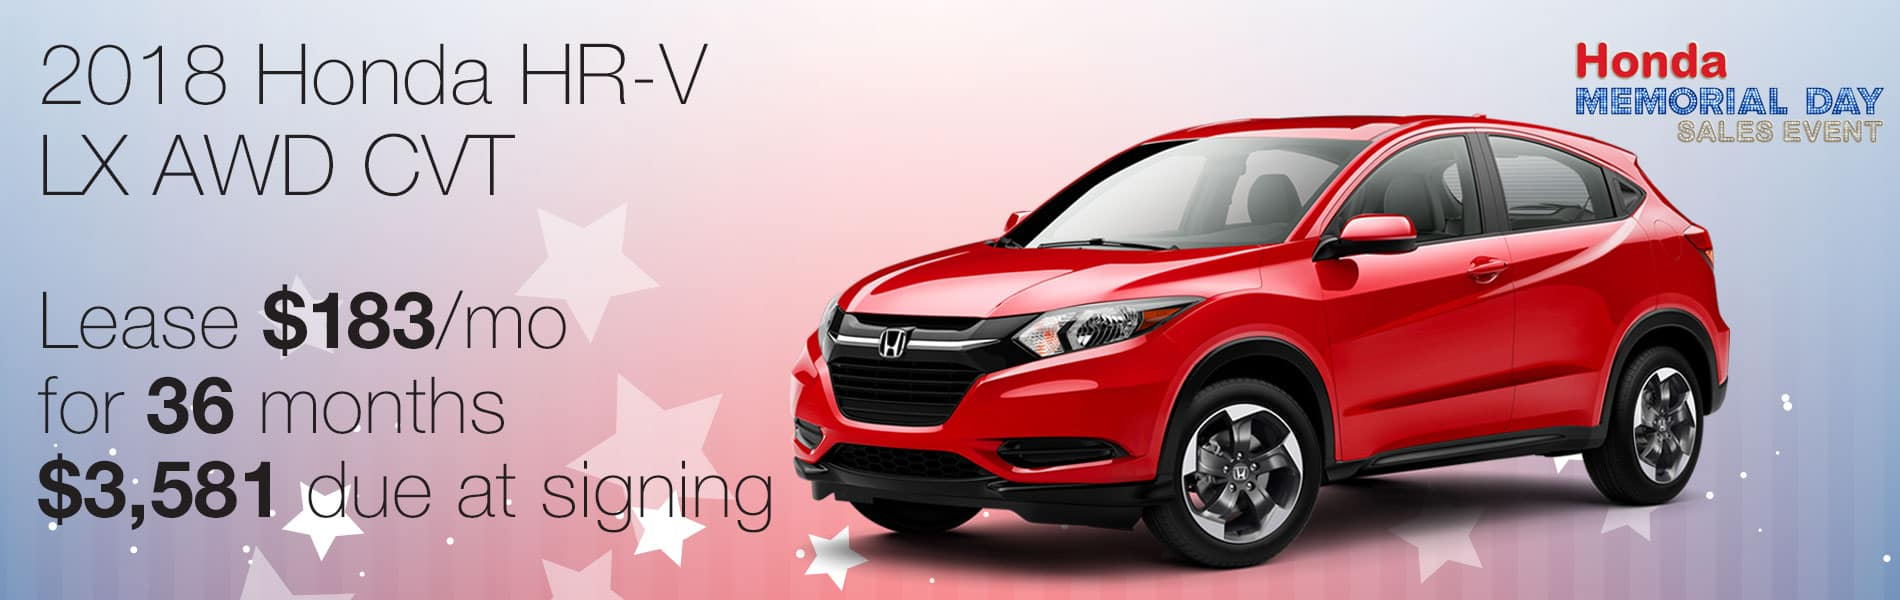 Lease a 2018 Honda HR-V LX AWD for $183 per month with $3,581 due at signing.